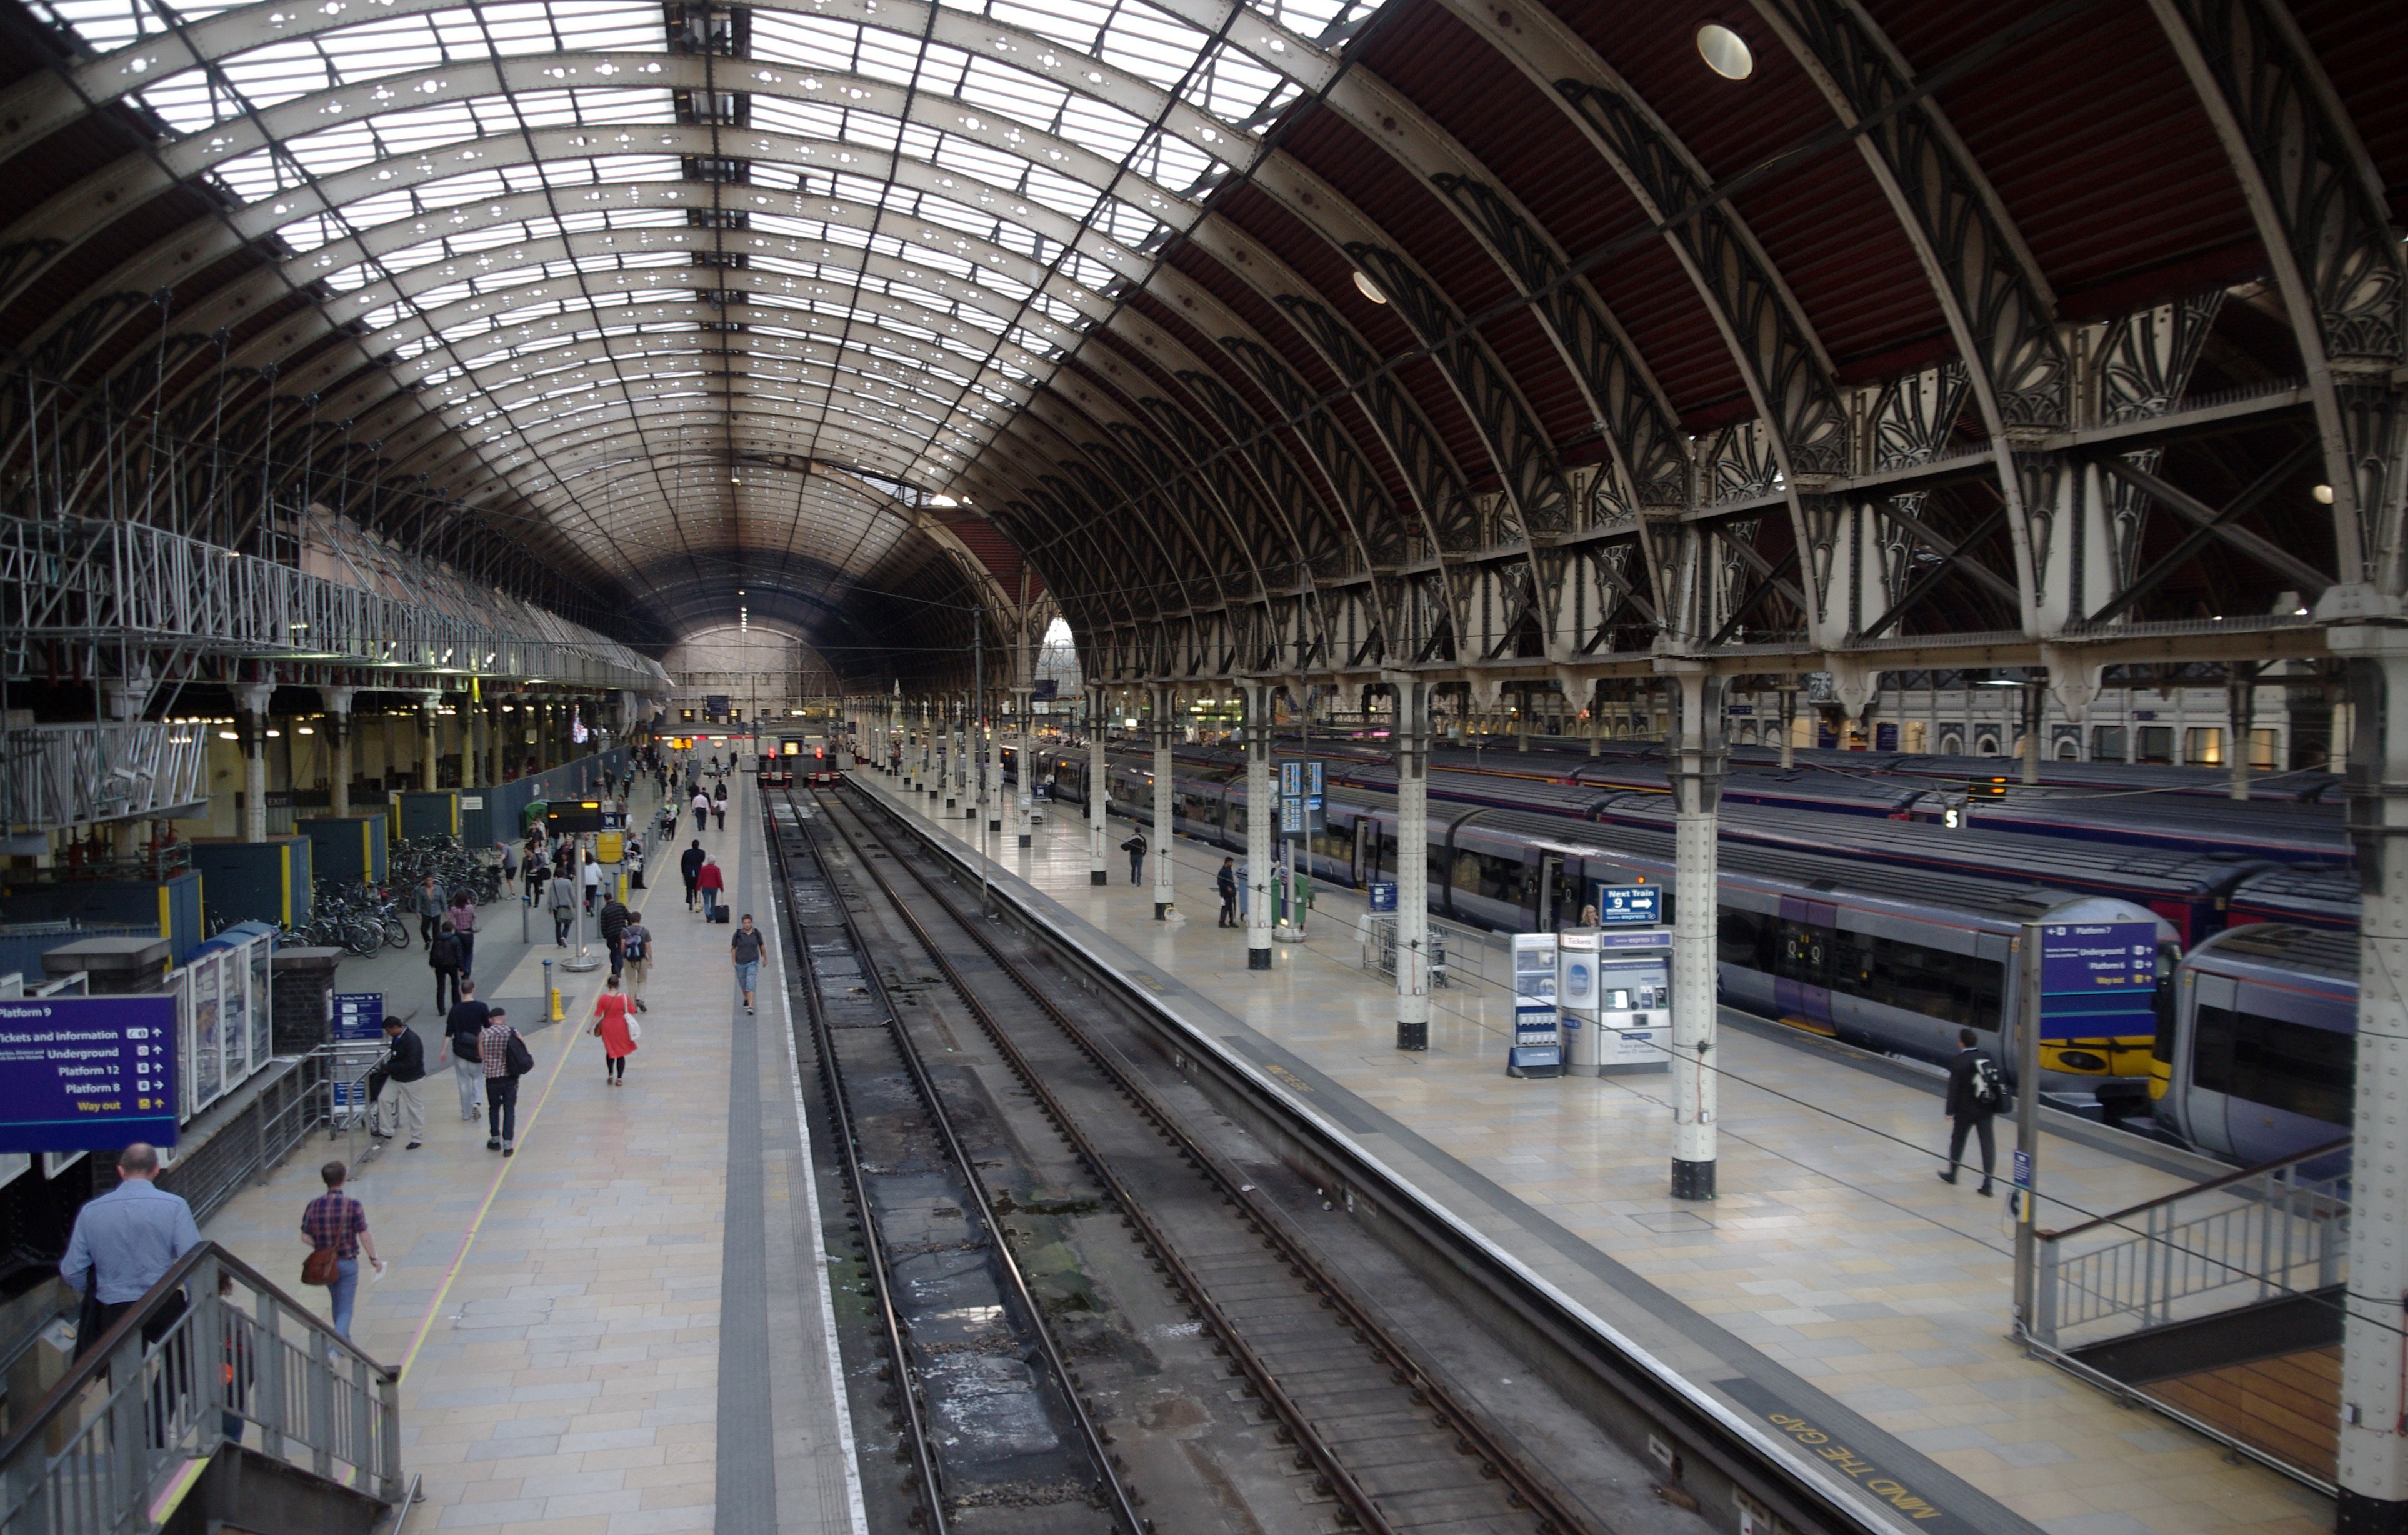 Contact Capital One >> Great London Buildings: Paddington Station - One of the Most Iconic Victorian Train Stations ...